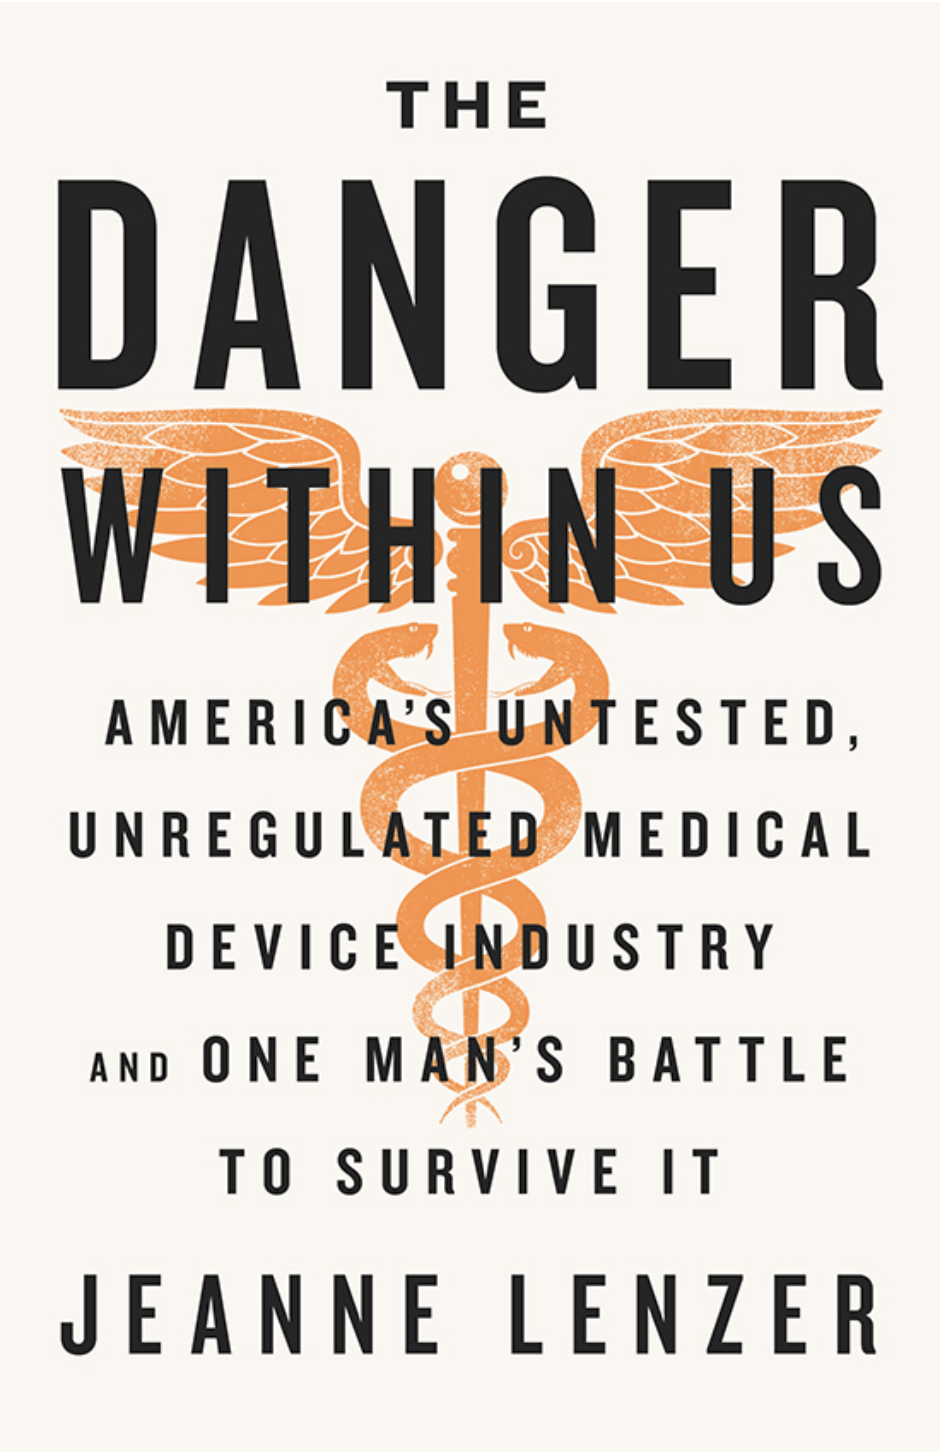 The Danger Within Us, by Jeanne Lenzer